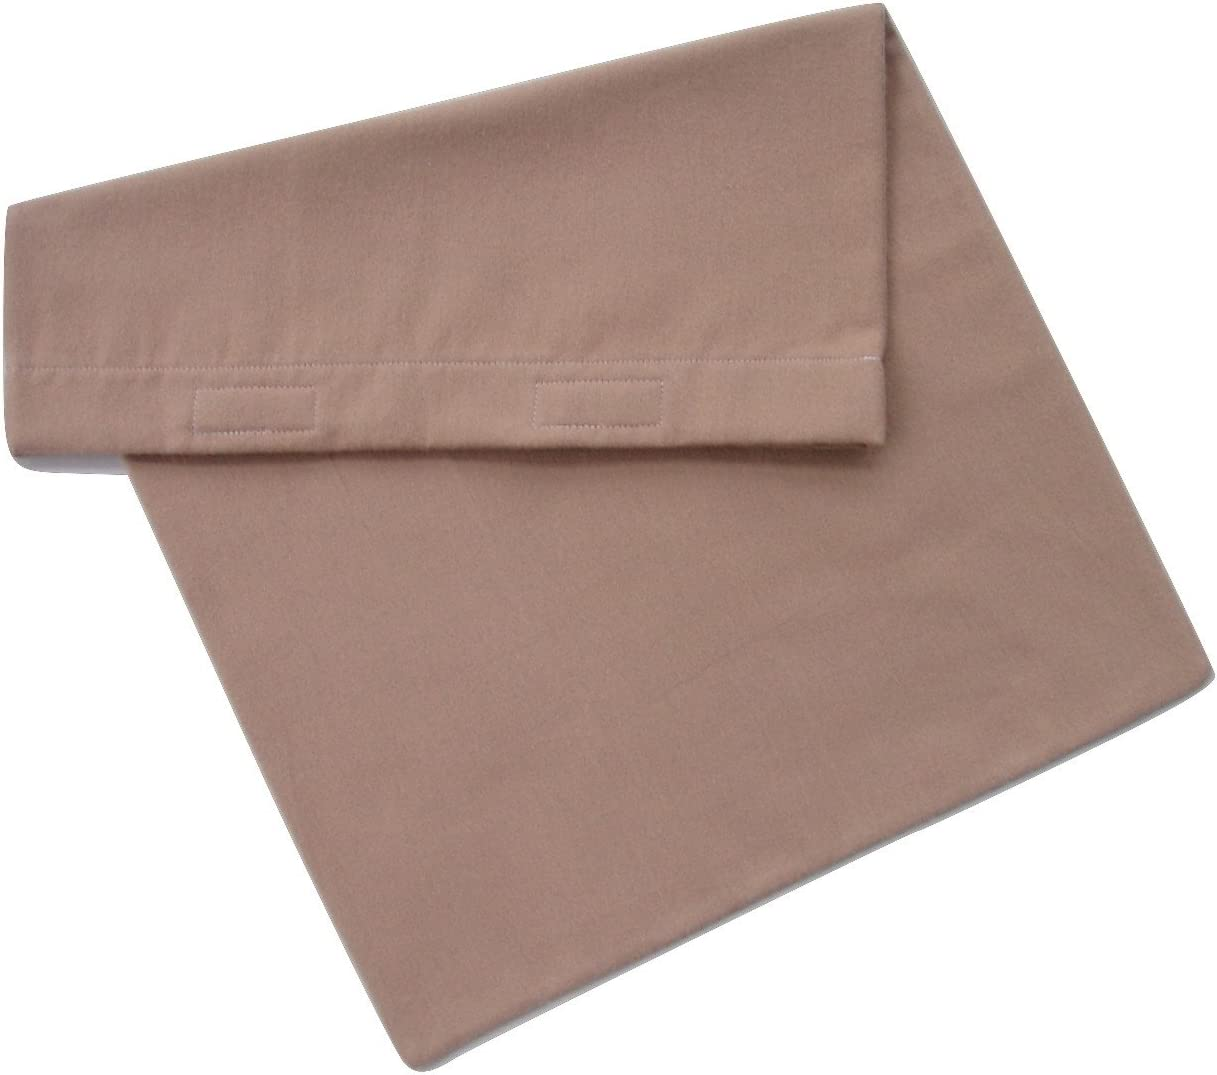 """Flannel Replacement Cover for 12""""x15"""" Heating Pad (tan)"""